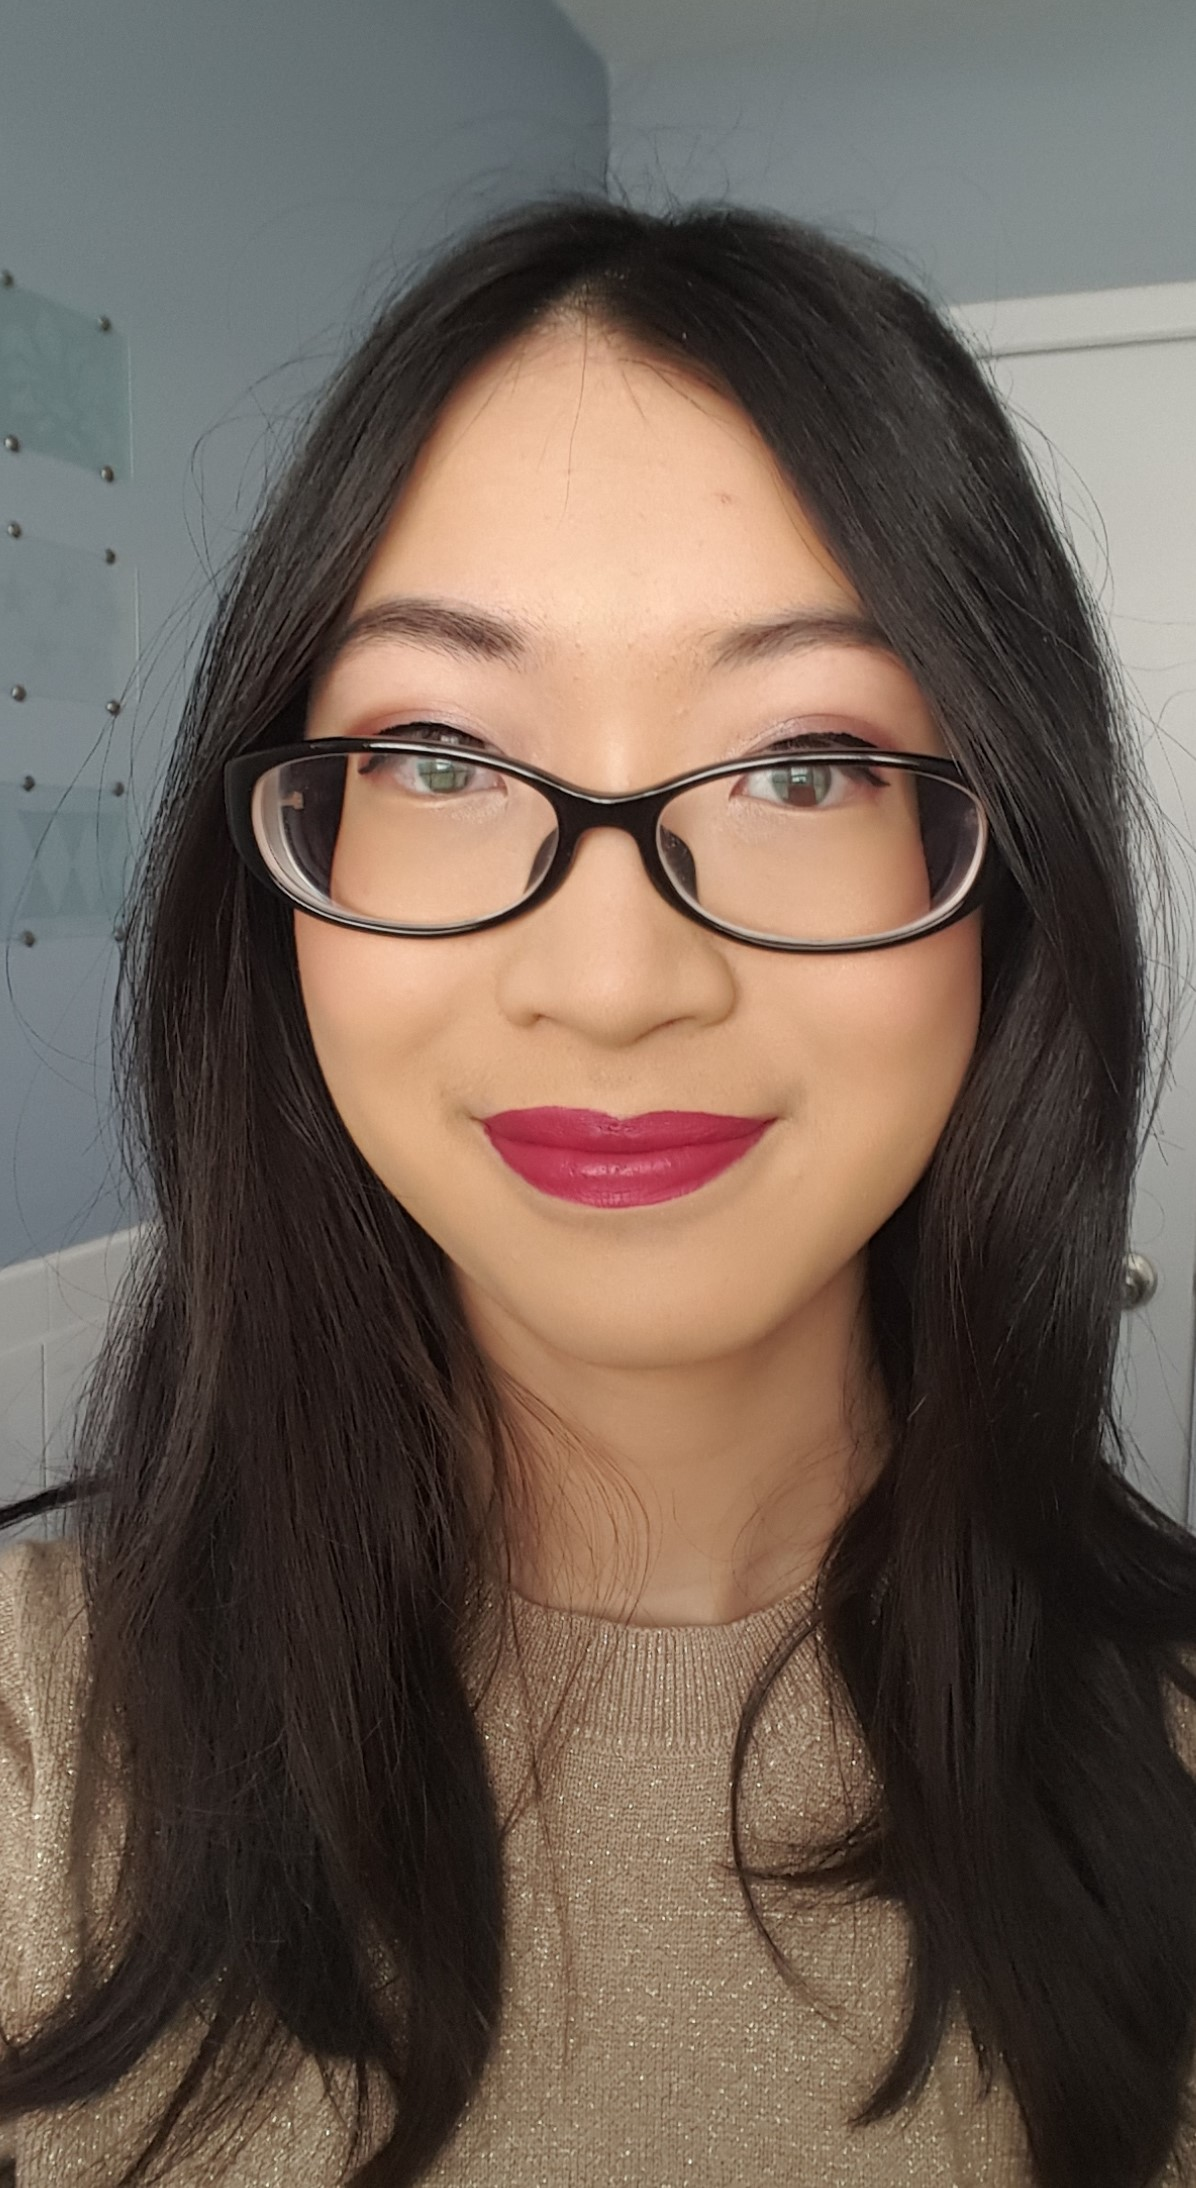 Brand Collection Wet N Wild 2017 Favs Im Not A Beauty Mega Glo Dual Ended Contour Stick Light Medium The Highlight Is Bit Hard To See Under My Glasses But Its Definitely There Shade Wearing In Liquid Catsuit Berry Recognize